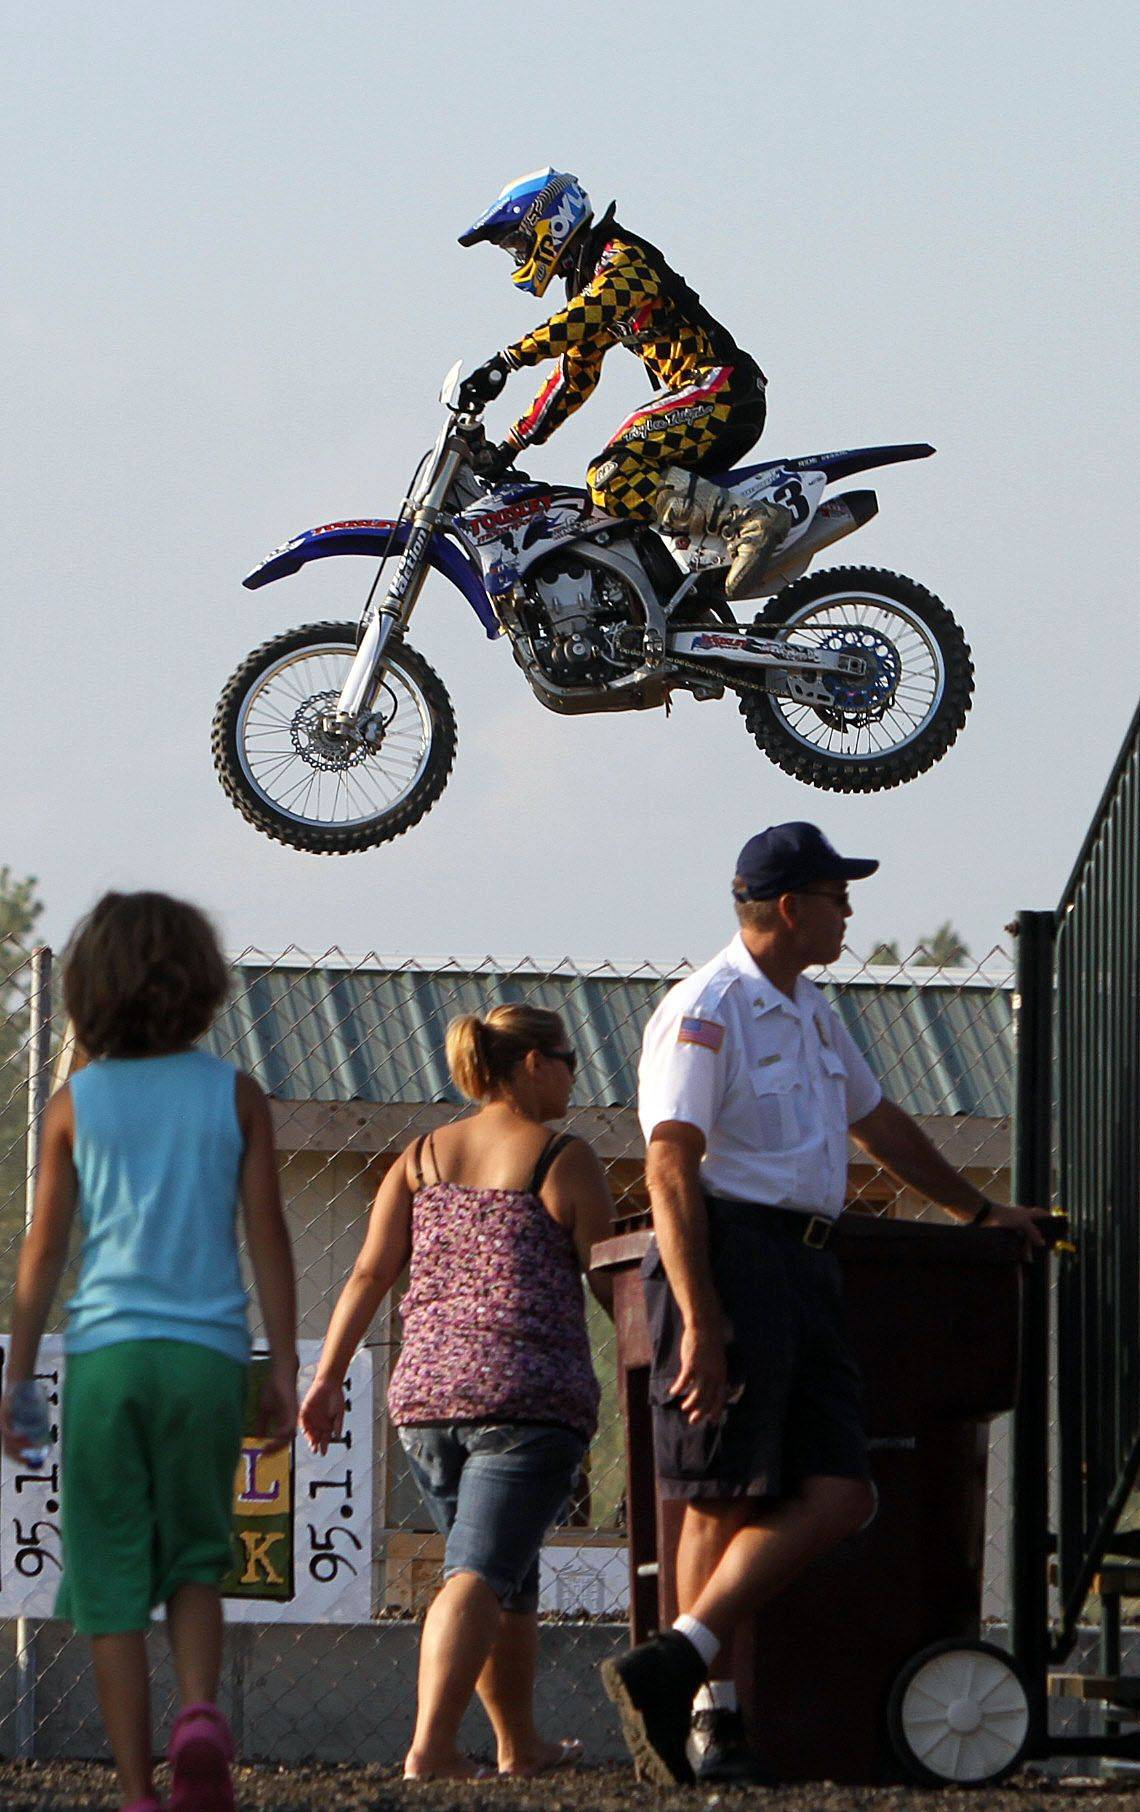 Motocross riders appear to be flying over spectators heads during their practice Tuesday evening at the Lake County Fair in Grayslake.